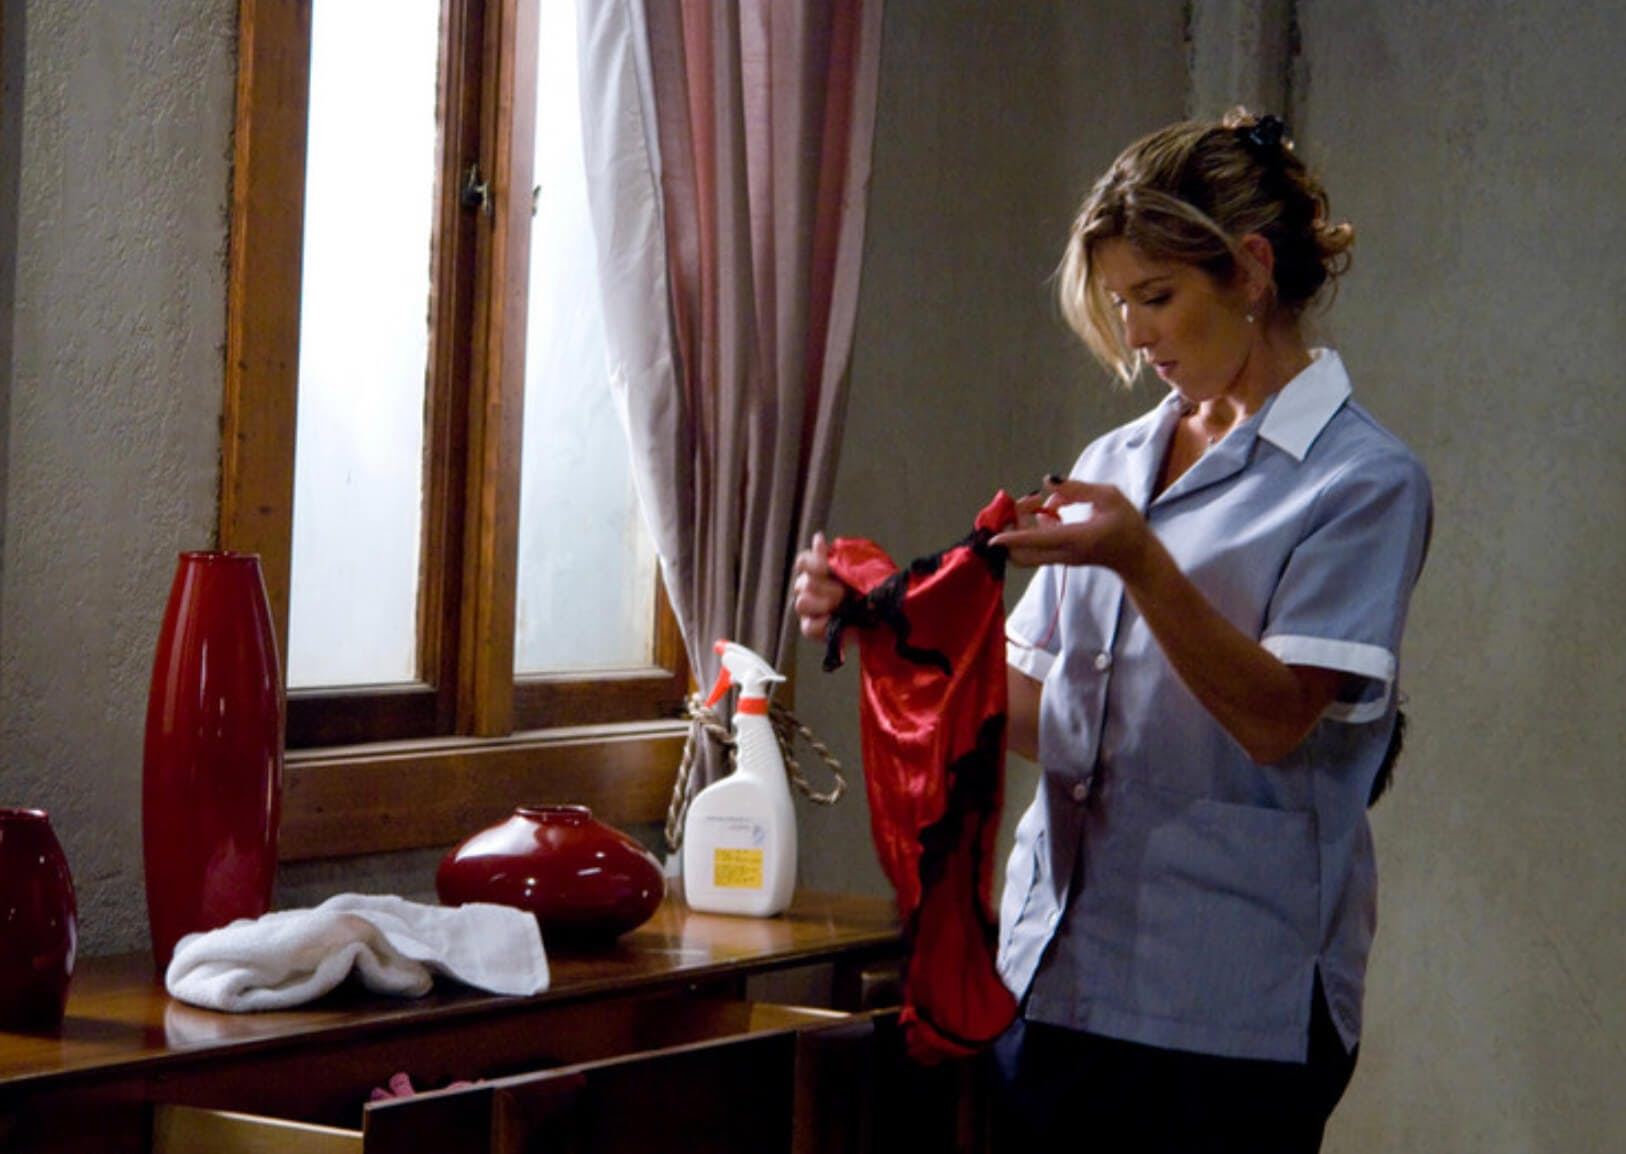 A maid is cleaning a room and finds sexy lingerie